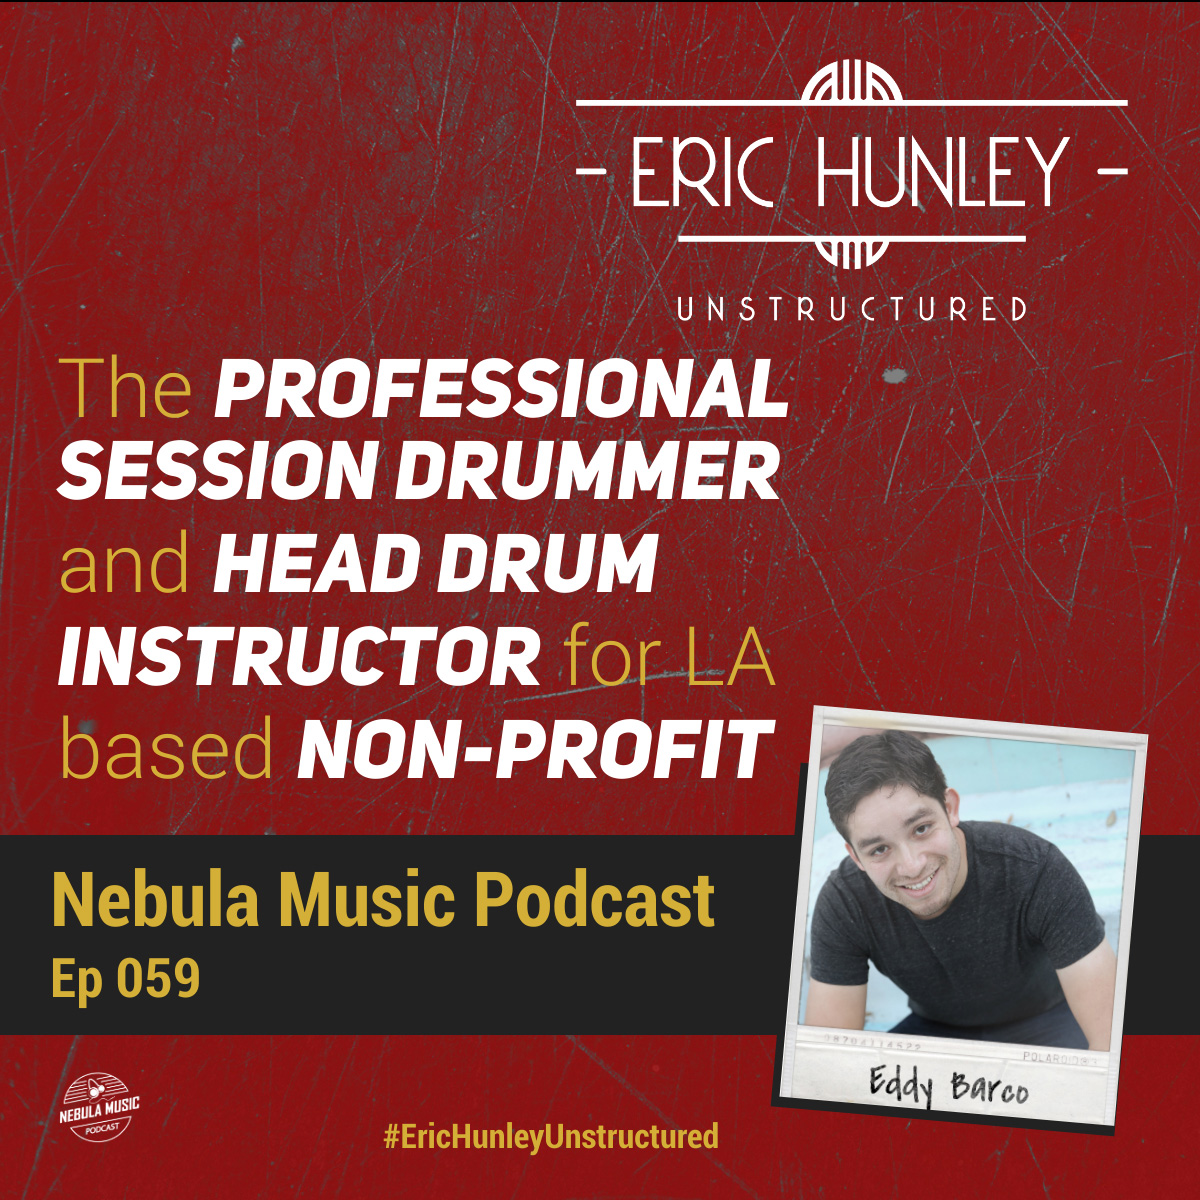 Eric Hunley Unstructured Podcast - 059 Eddy Barco Square Post